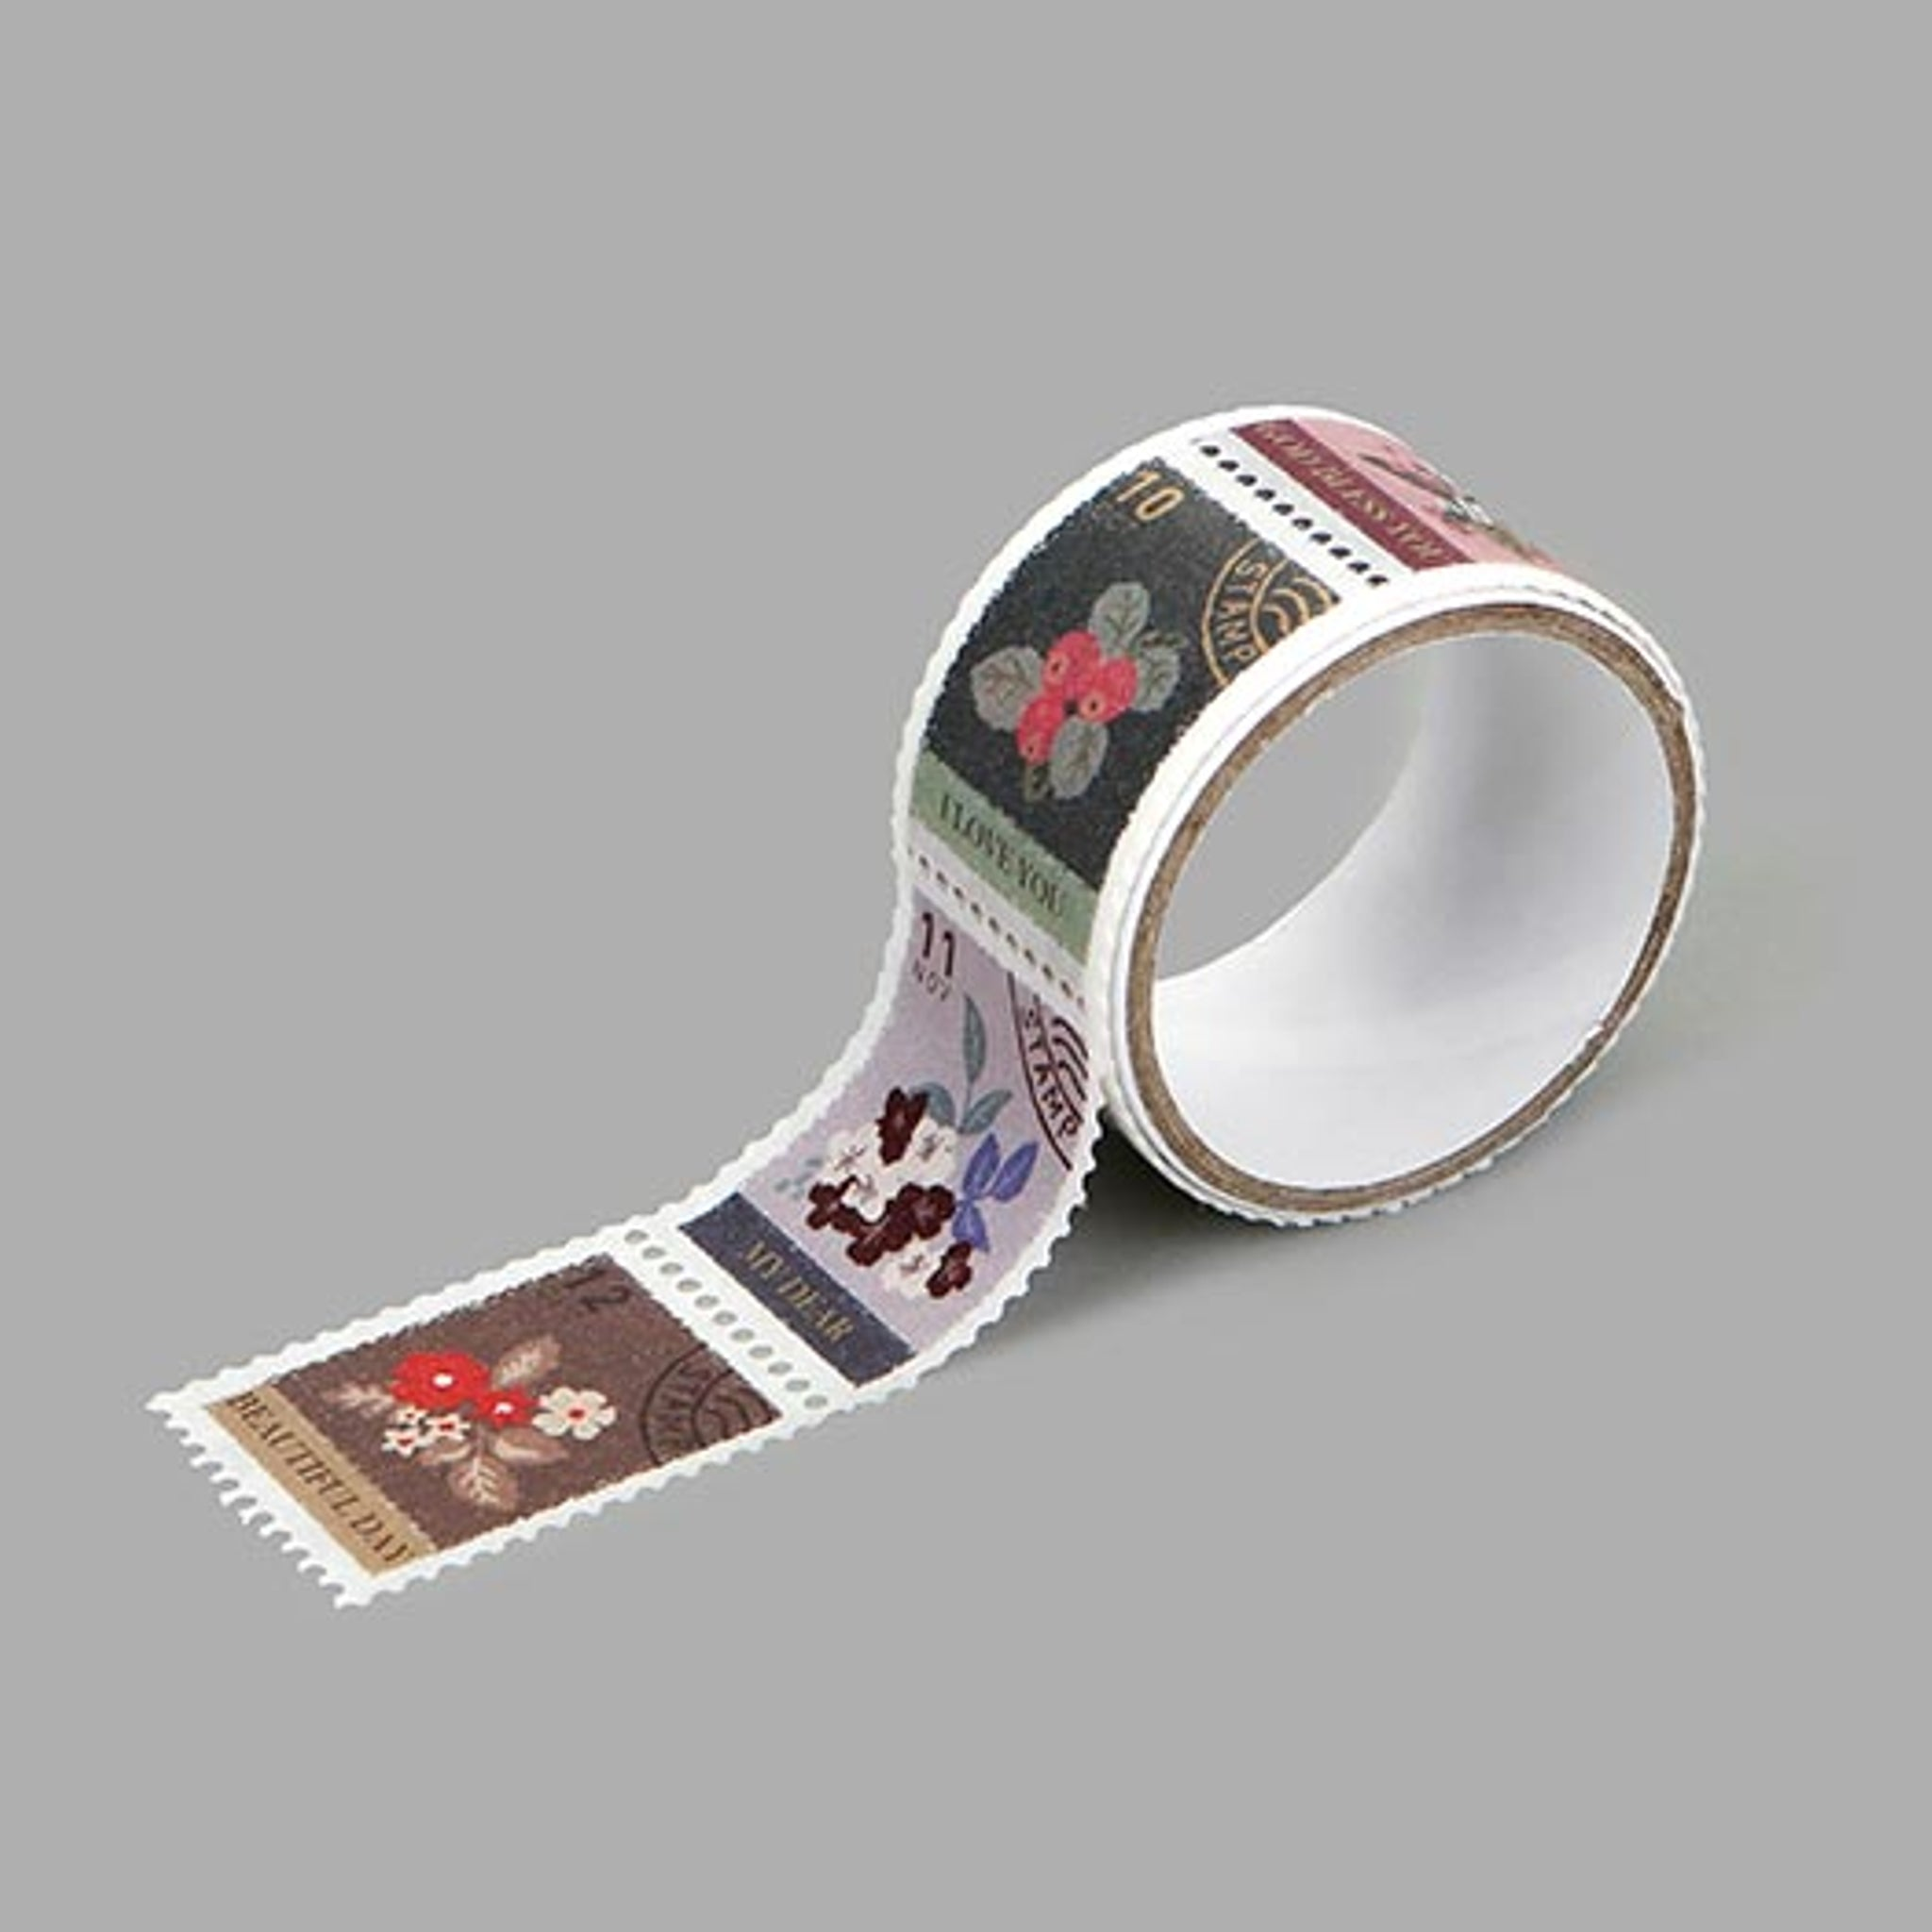 Dailylike Flower Stamp Masking Tape